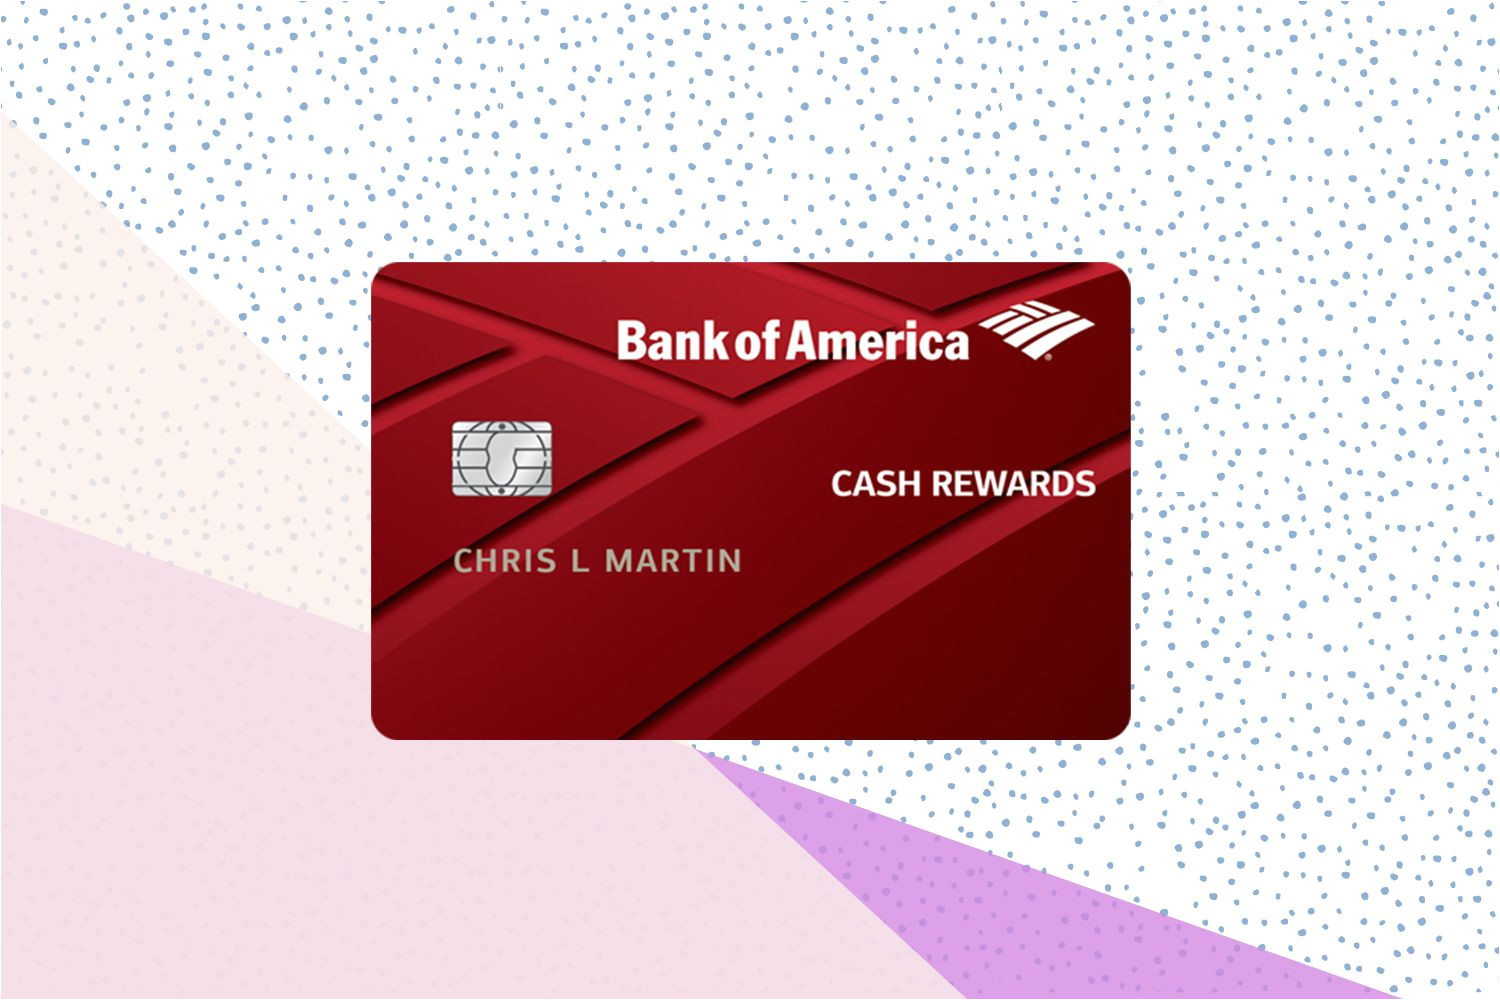 bank of america cash rewards 4795fb638c574bbfa616b2a7c927314c jpg